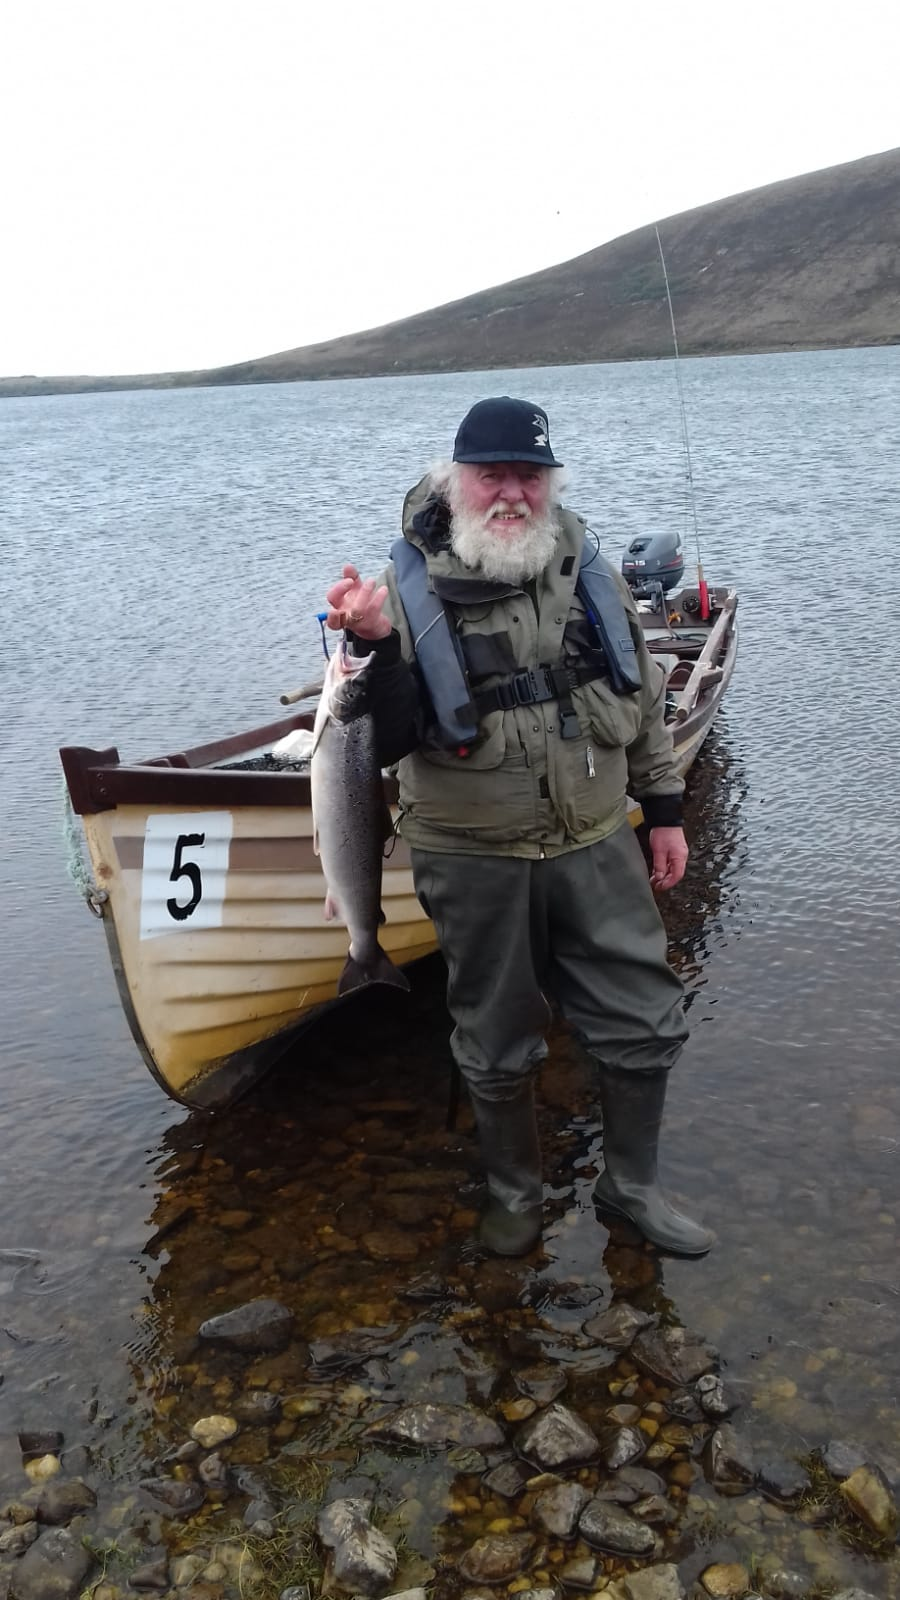 Vincent Rigney_Atlantic Salmon Flyfishing_Carrowmore_Lake_Bangor_Erris_Mayo_Ireland.JPG